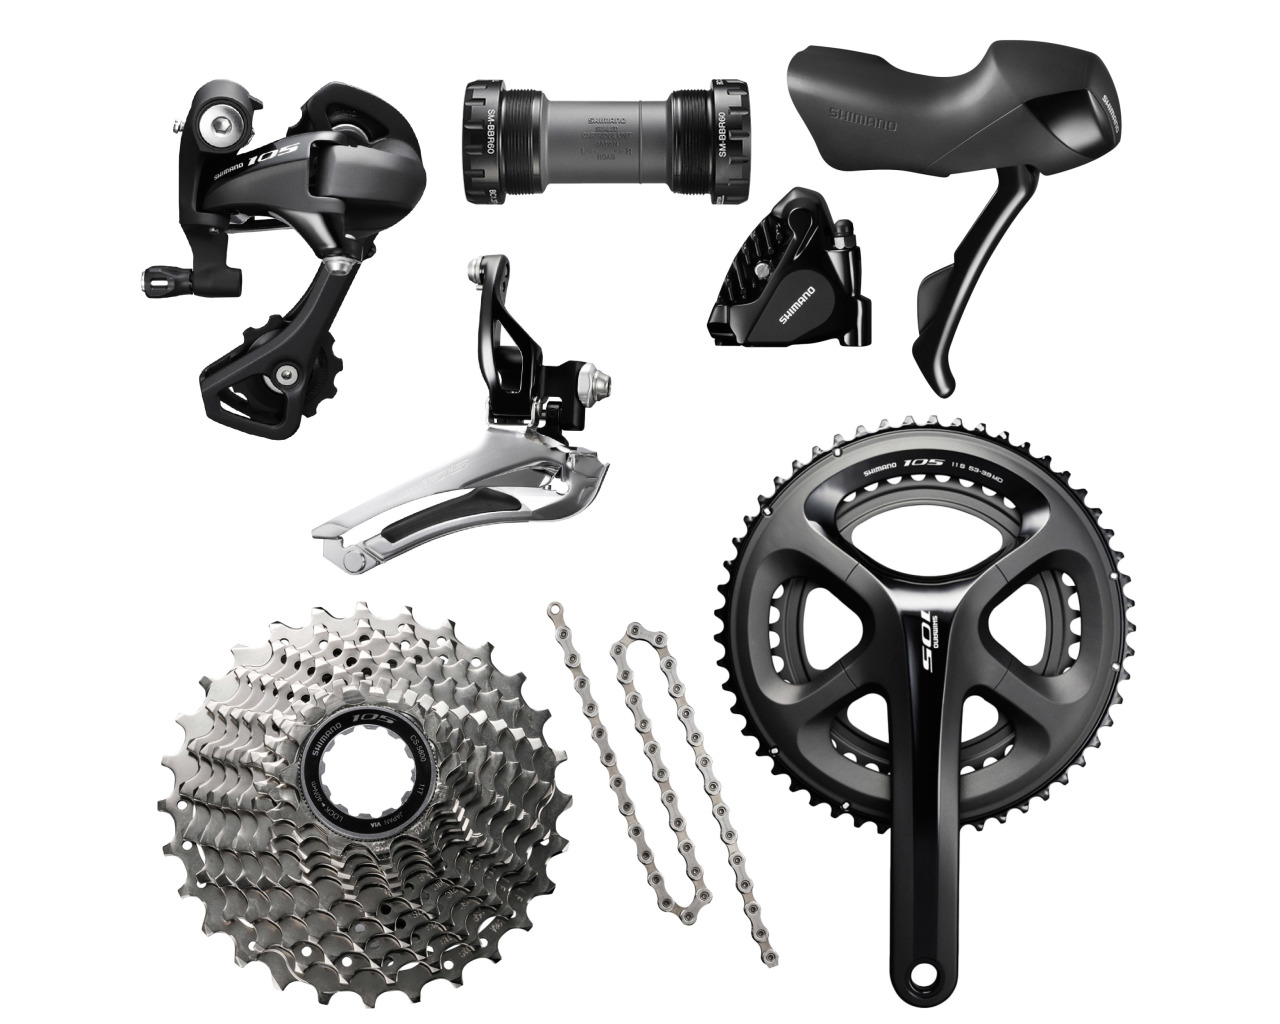 224086539bd Shimano 105 5800 Hydraulic Disc Brake Groupset - FREE FITTING - Buy Online  | Pedal Revolution